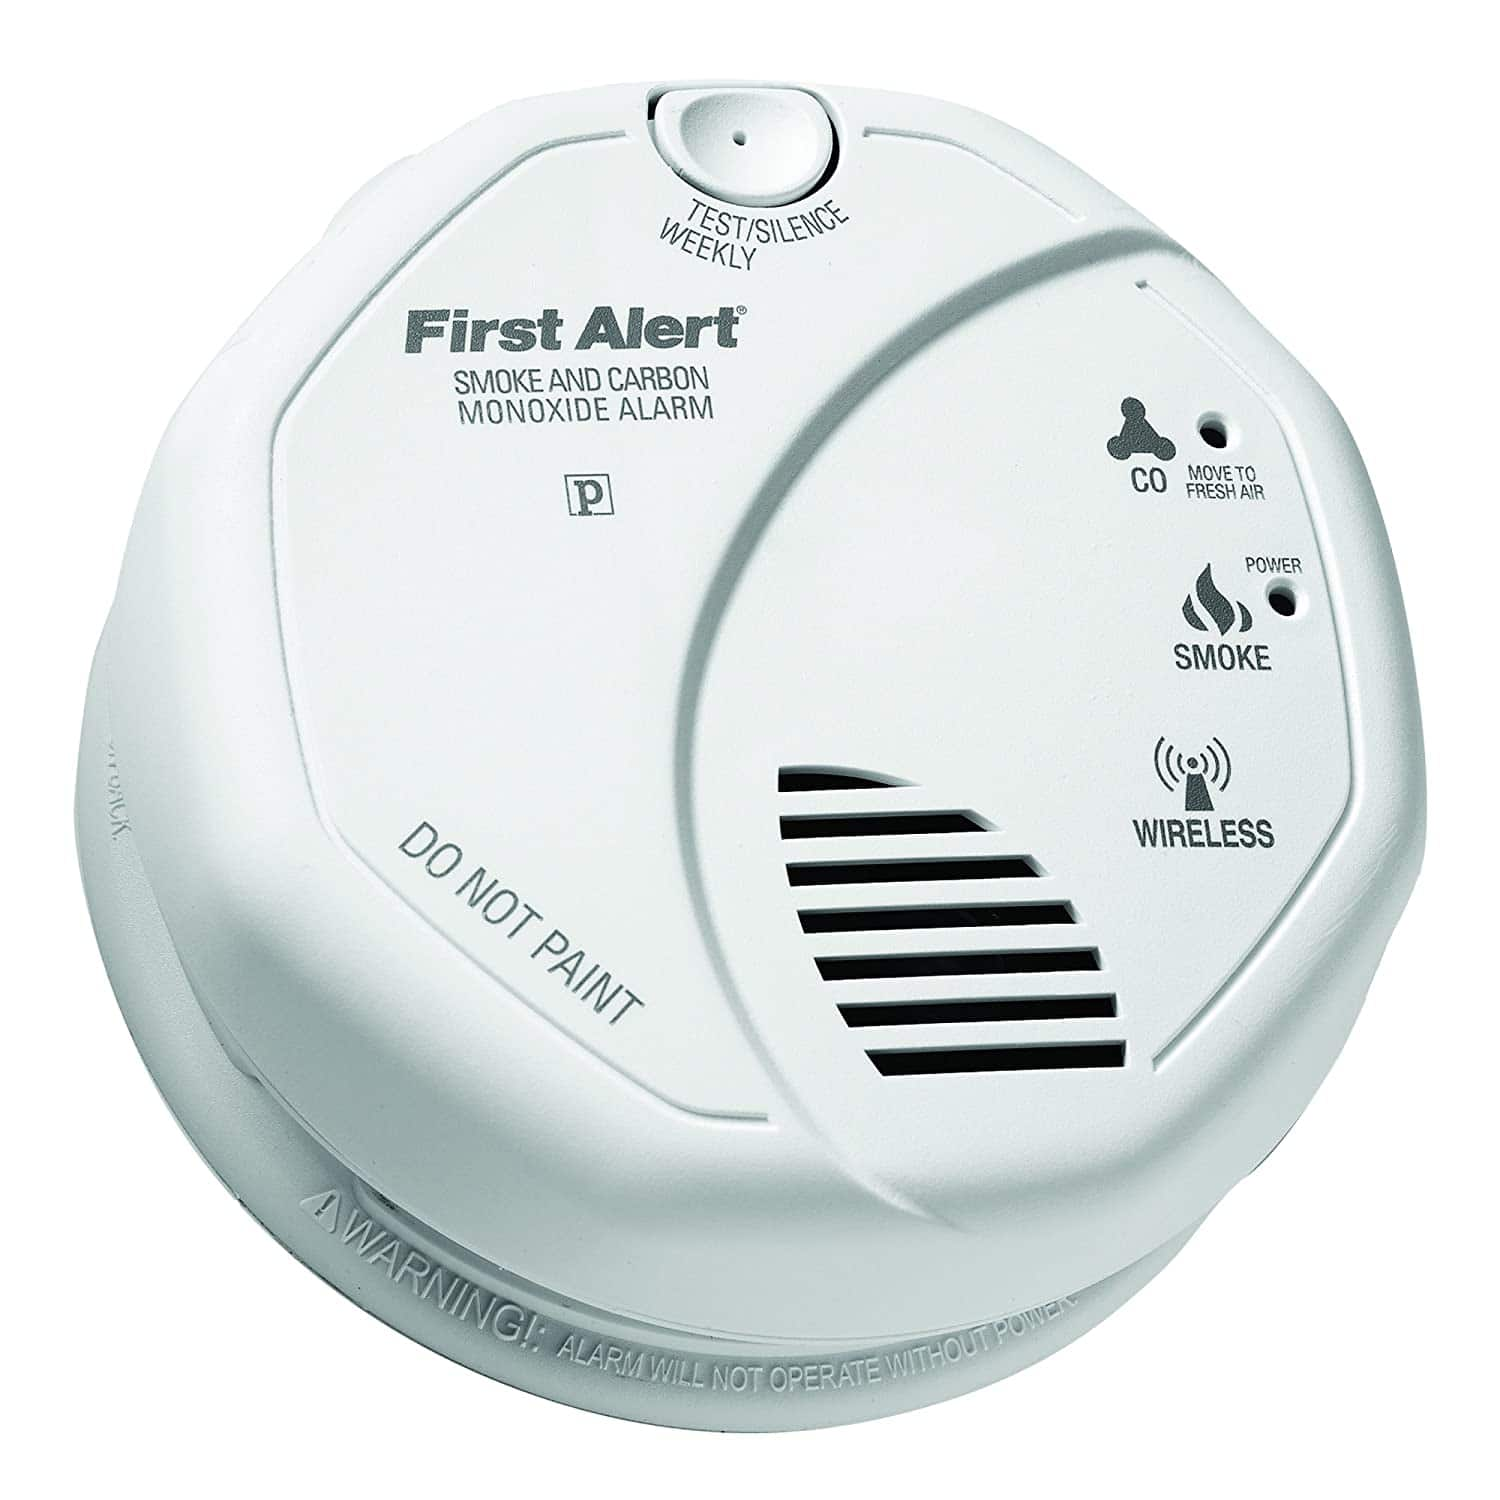 First Alert 2-in-1 Smoke and Carbon Monoxide Alarms $29.59